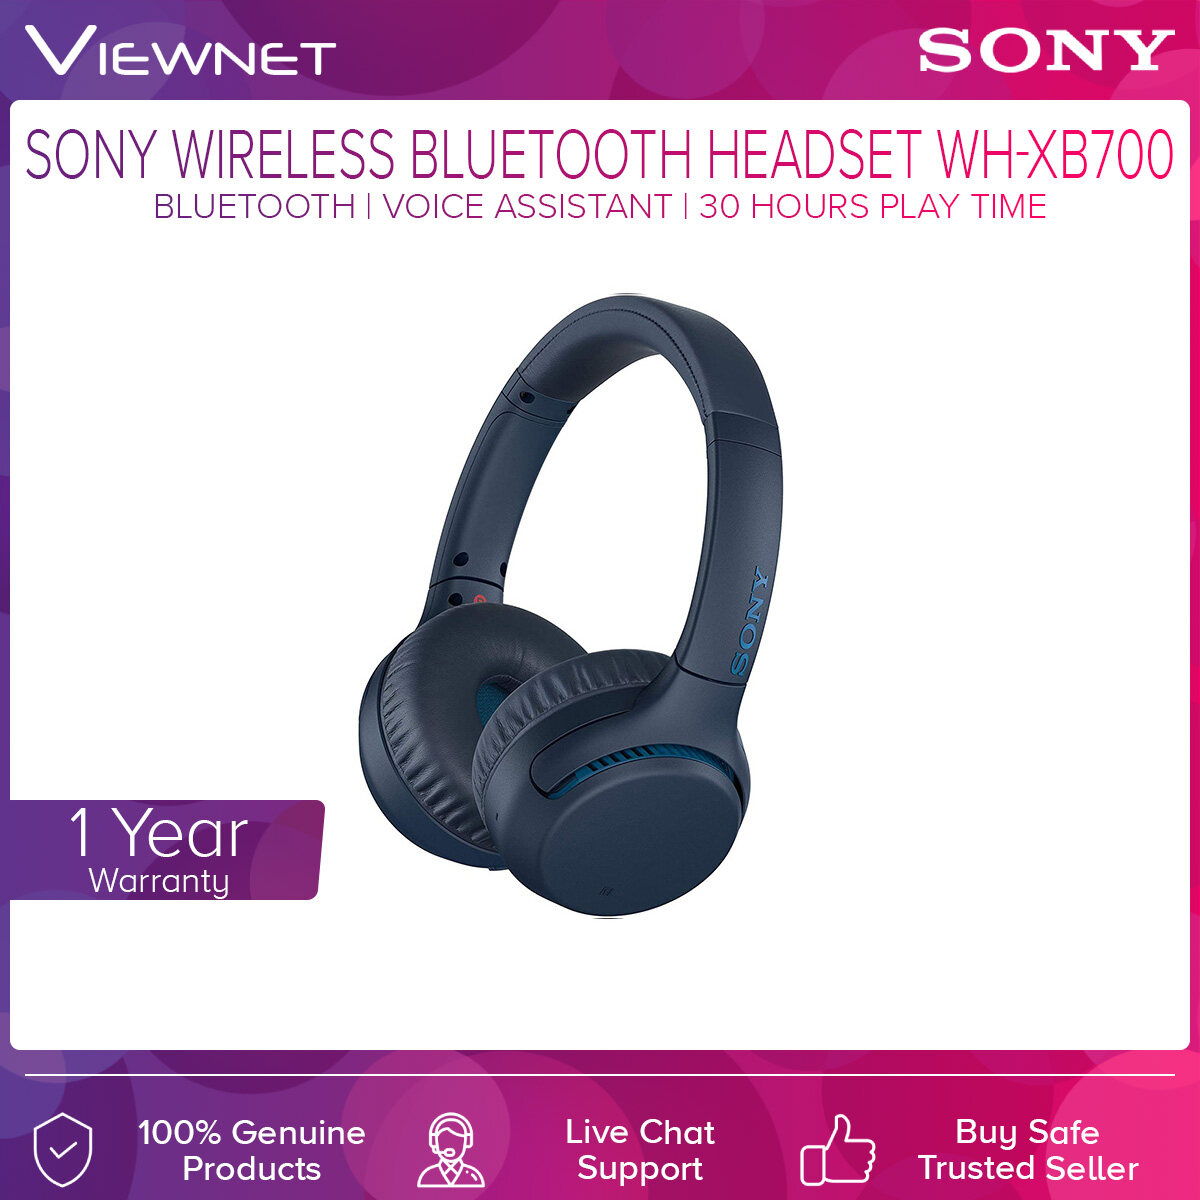 Sony WH-XB700 Wireless Bluetooth Headset Extra Bass with NFC,  30 Hour Play Time, Sleek Design And Long-Listen Comfort, Built-in Microphone, Voice Assistant, Headphone Connect